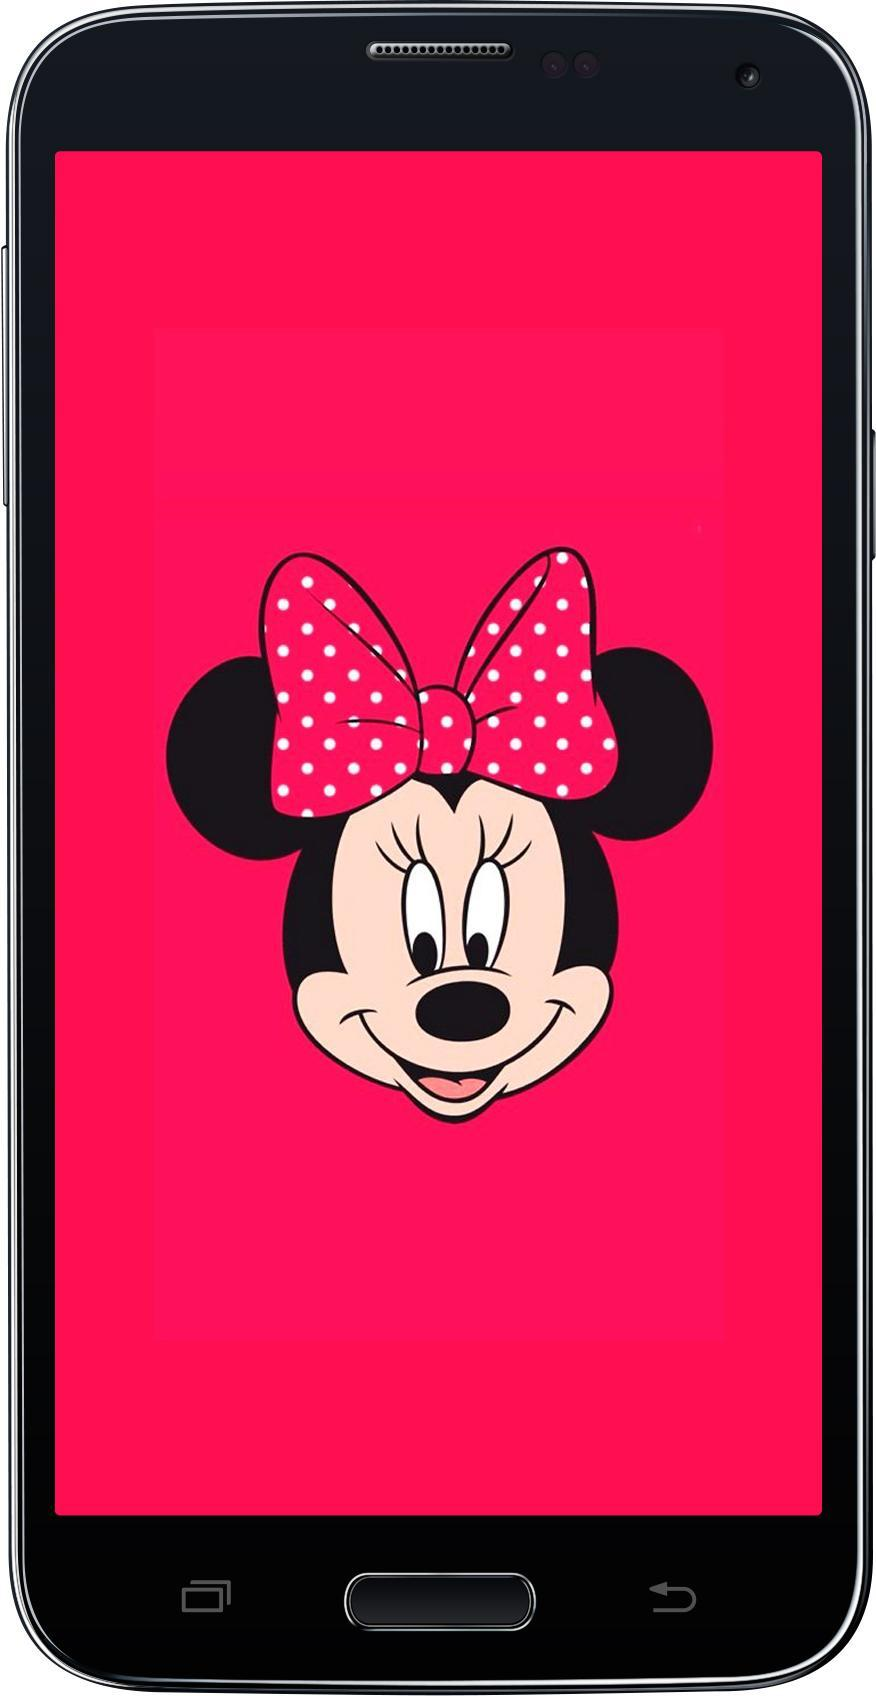 Hd Beautiful Minnie Mickey Mouse Wallpapers For Android Apk